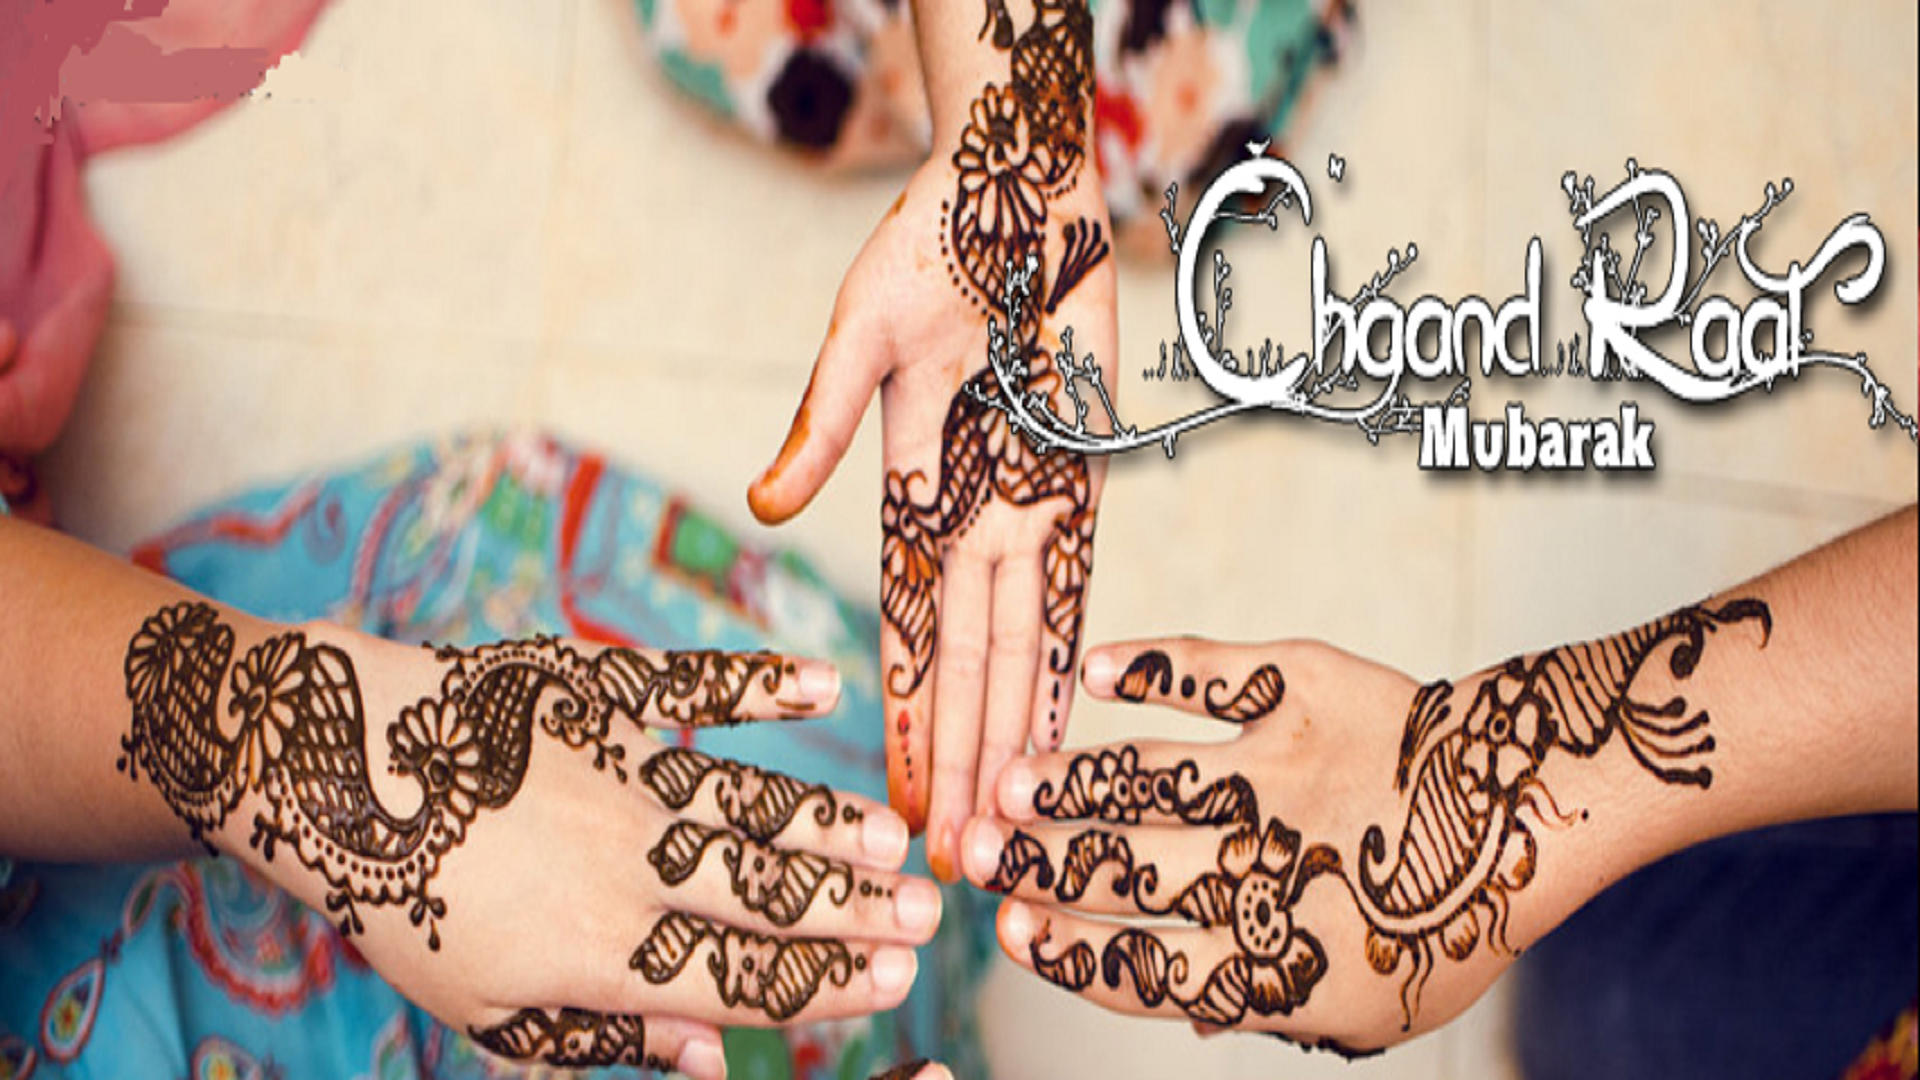 Chand-Raat-Cover-fb-free-hd-wallpapers